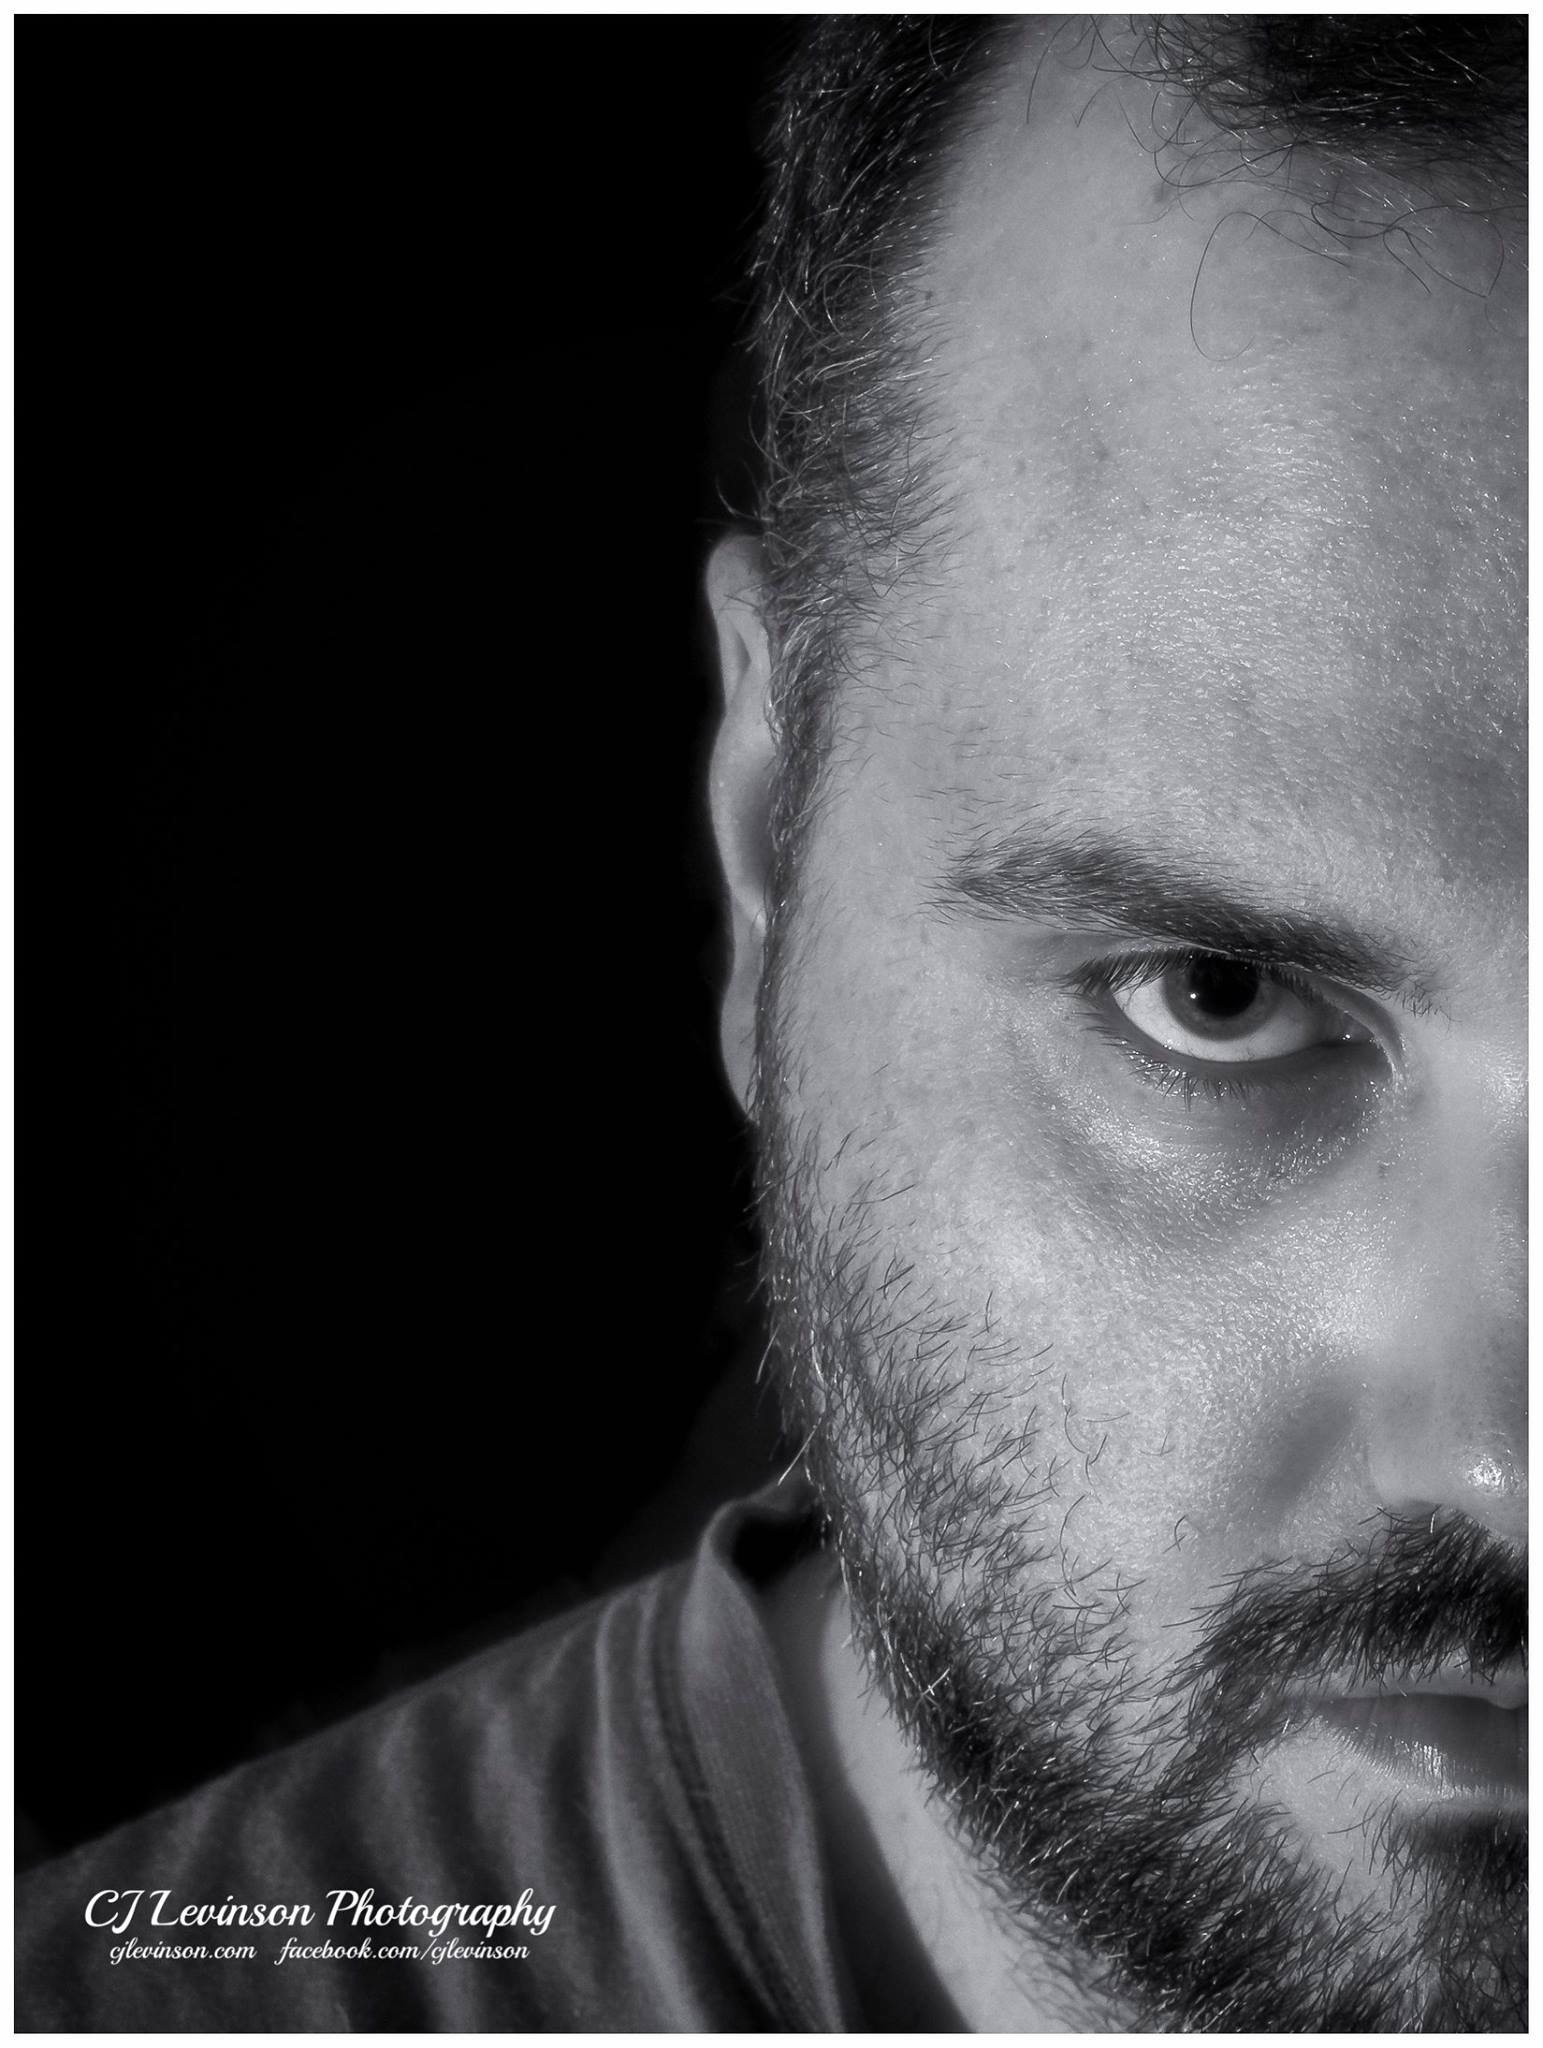 Self Portrait in Black and White